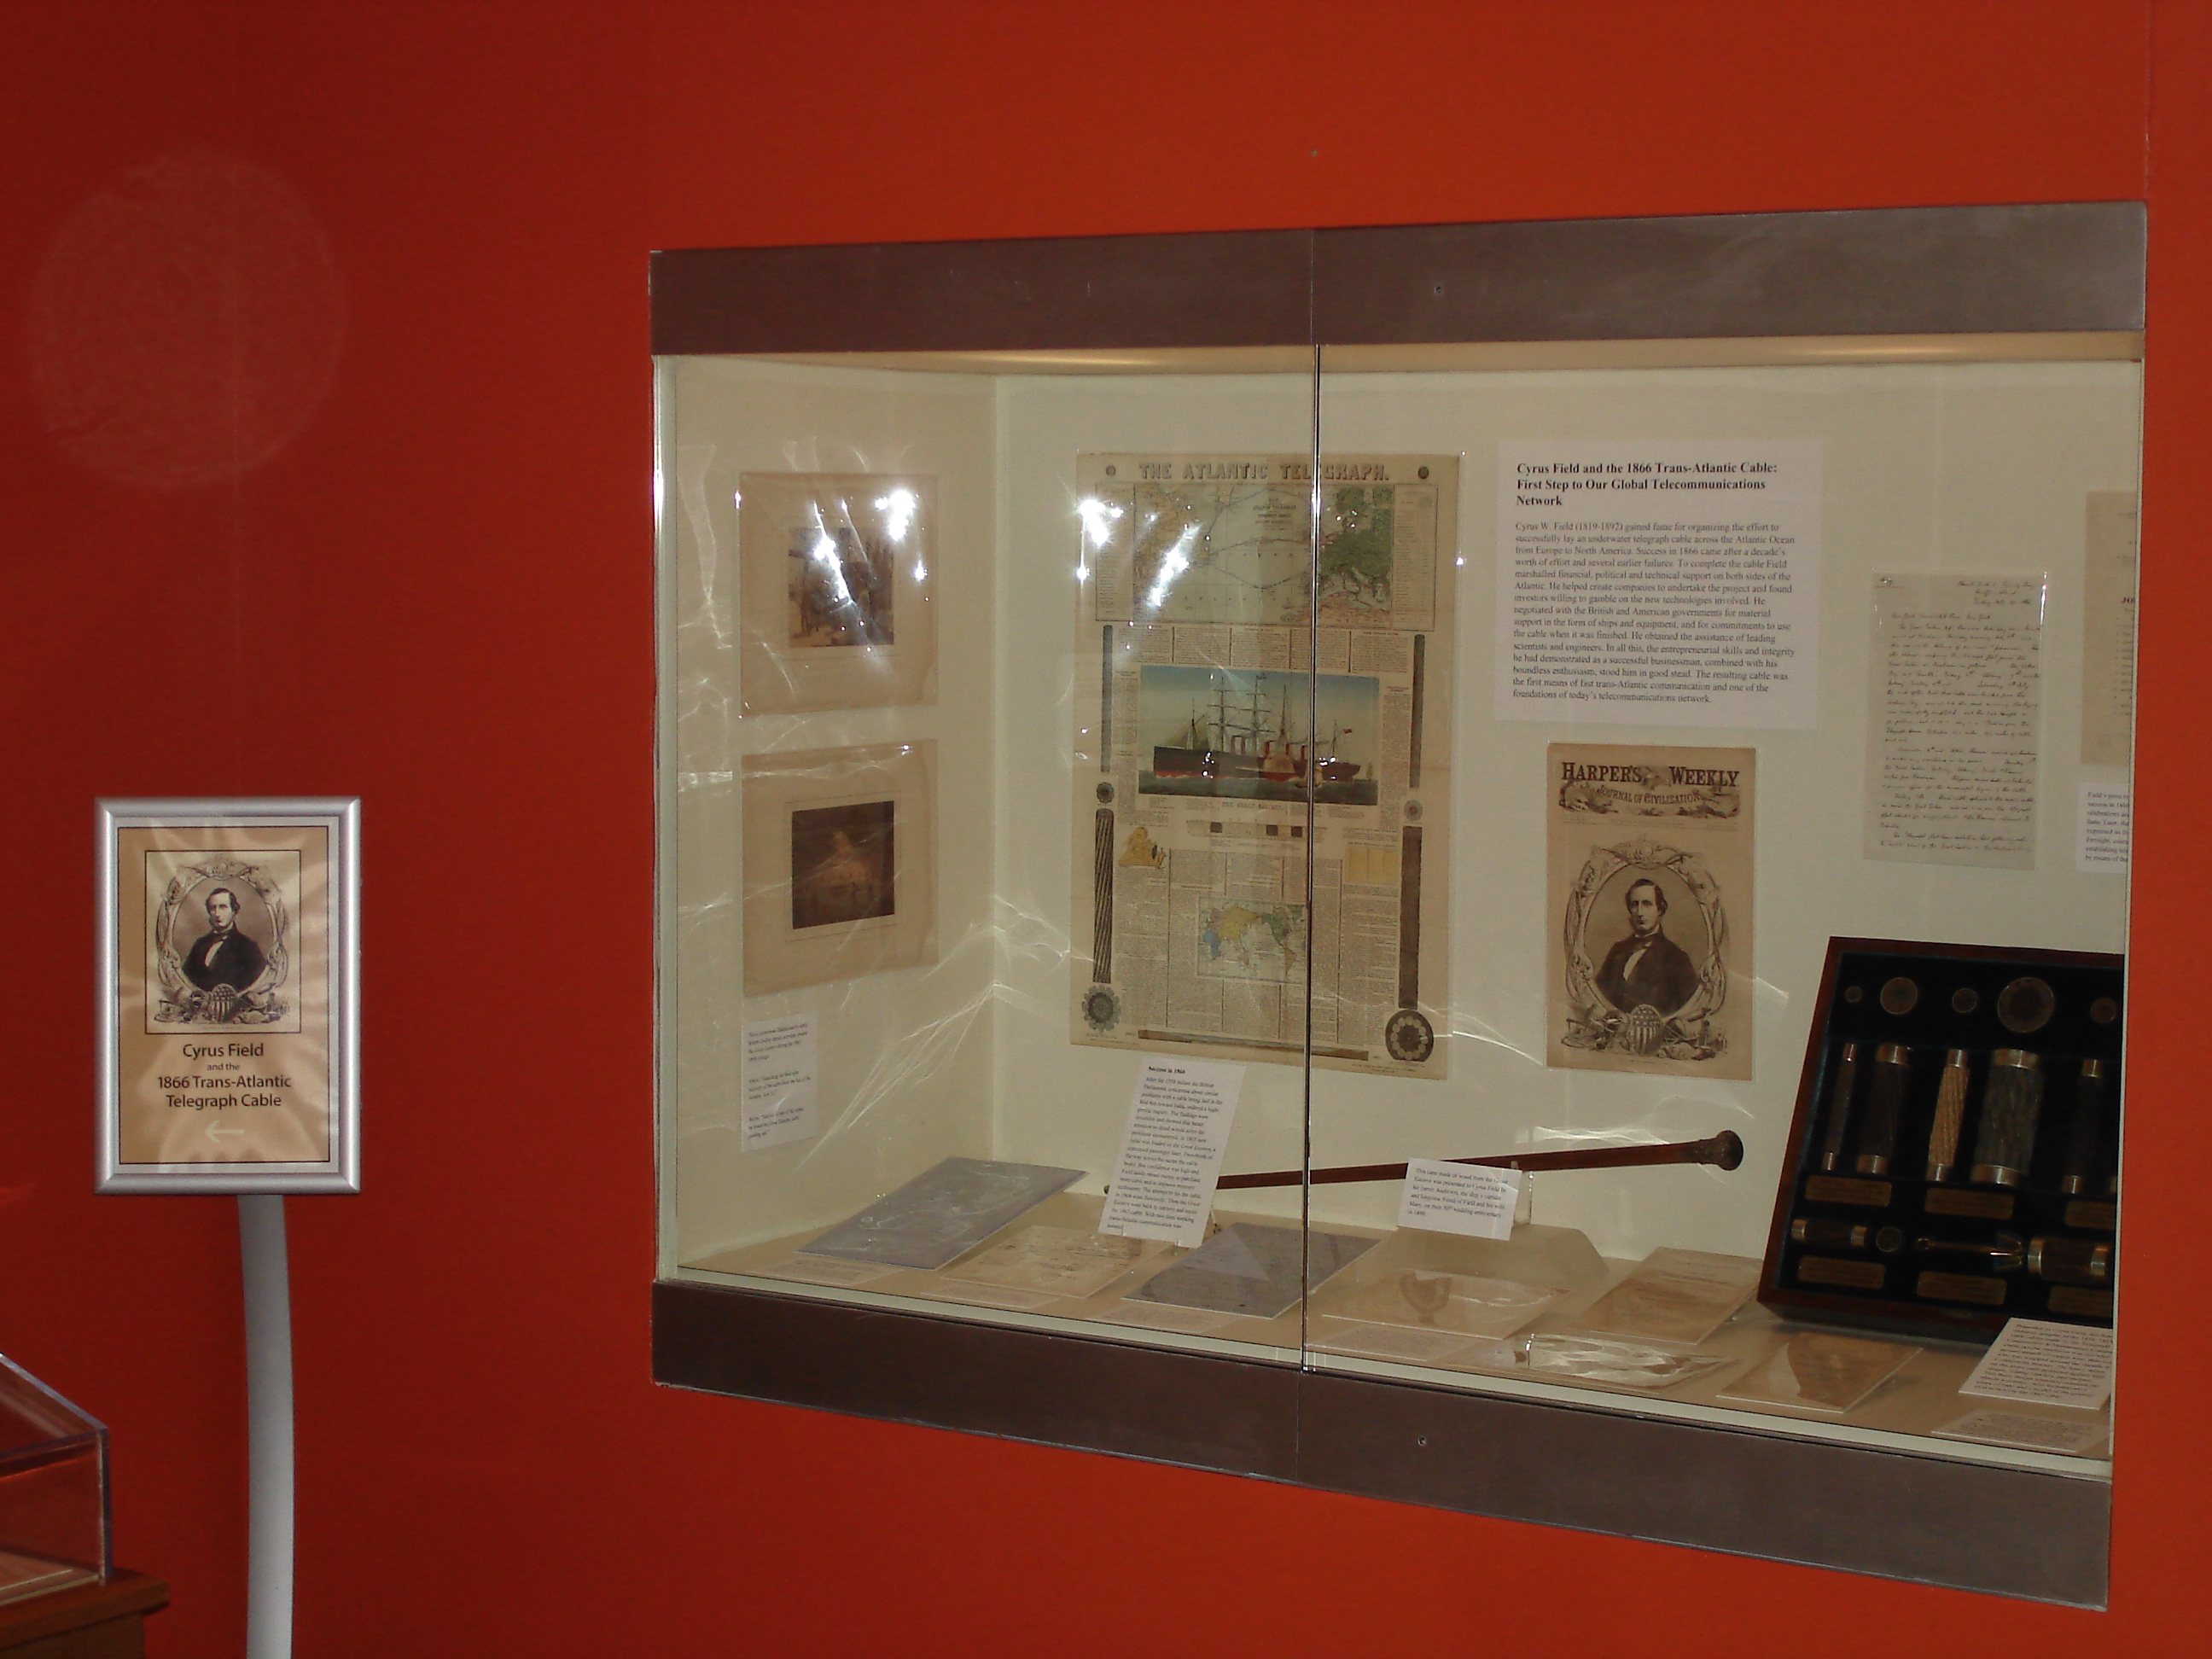 A view of the exhibit, looking into the corner. The wall is painted red and there is a display case set into the wall with a sign standing next to it giving the name of the exhibit. In the case are notes, letters, prints, a cane, pieces of cable, and notes/labels describing the objects